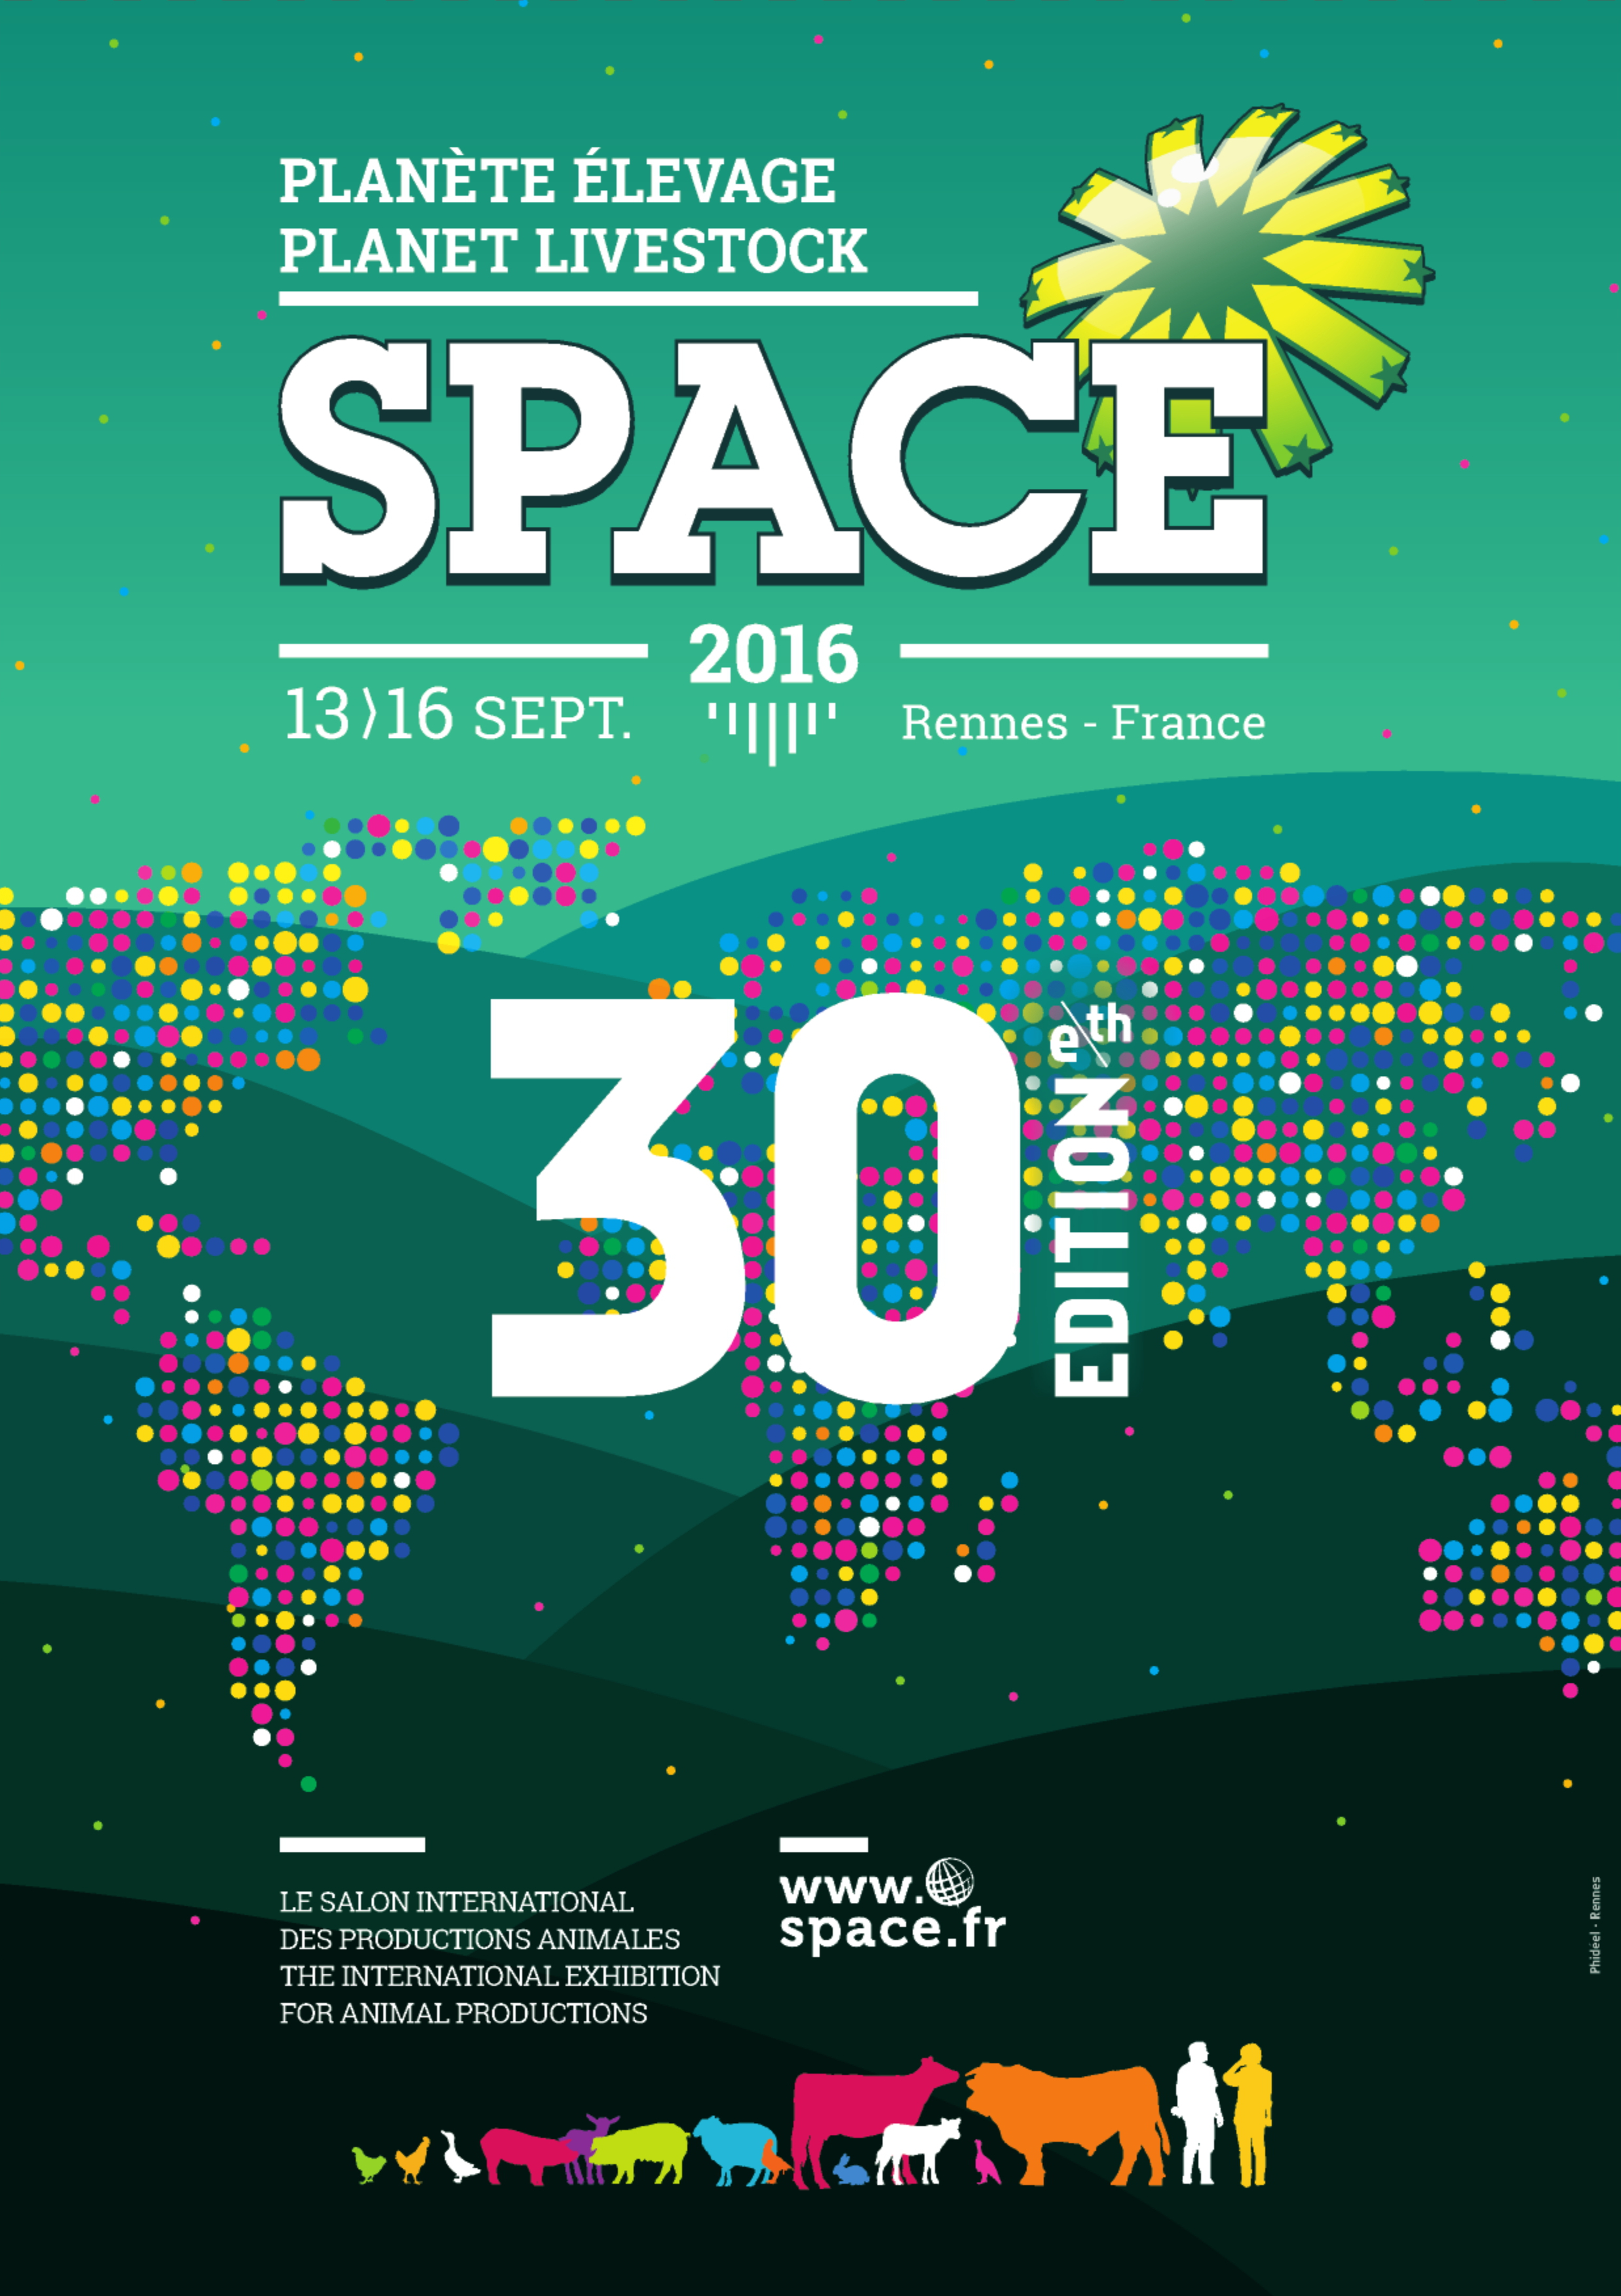 SPACE 2016 « Europ Service Industrie